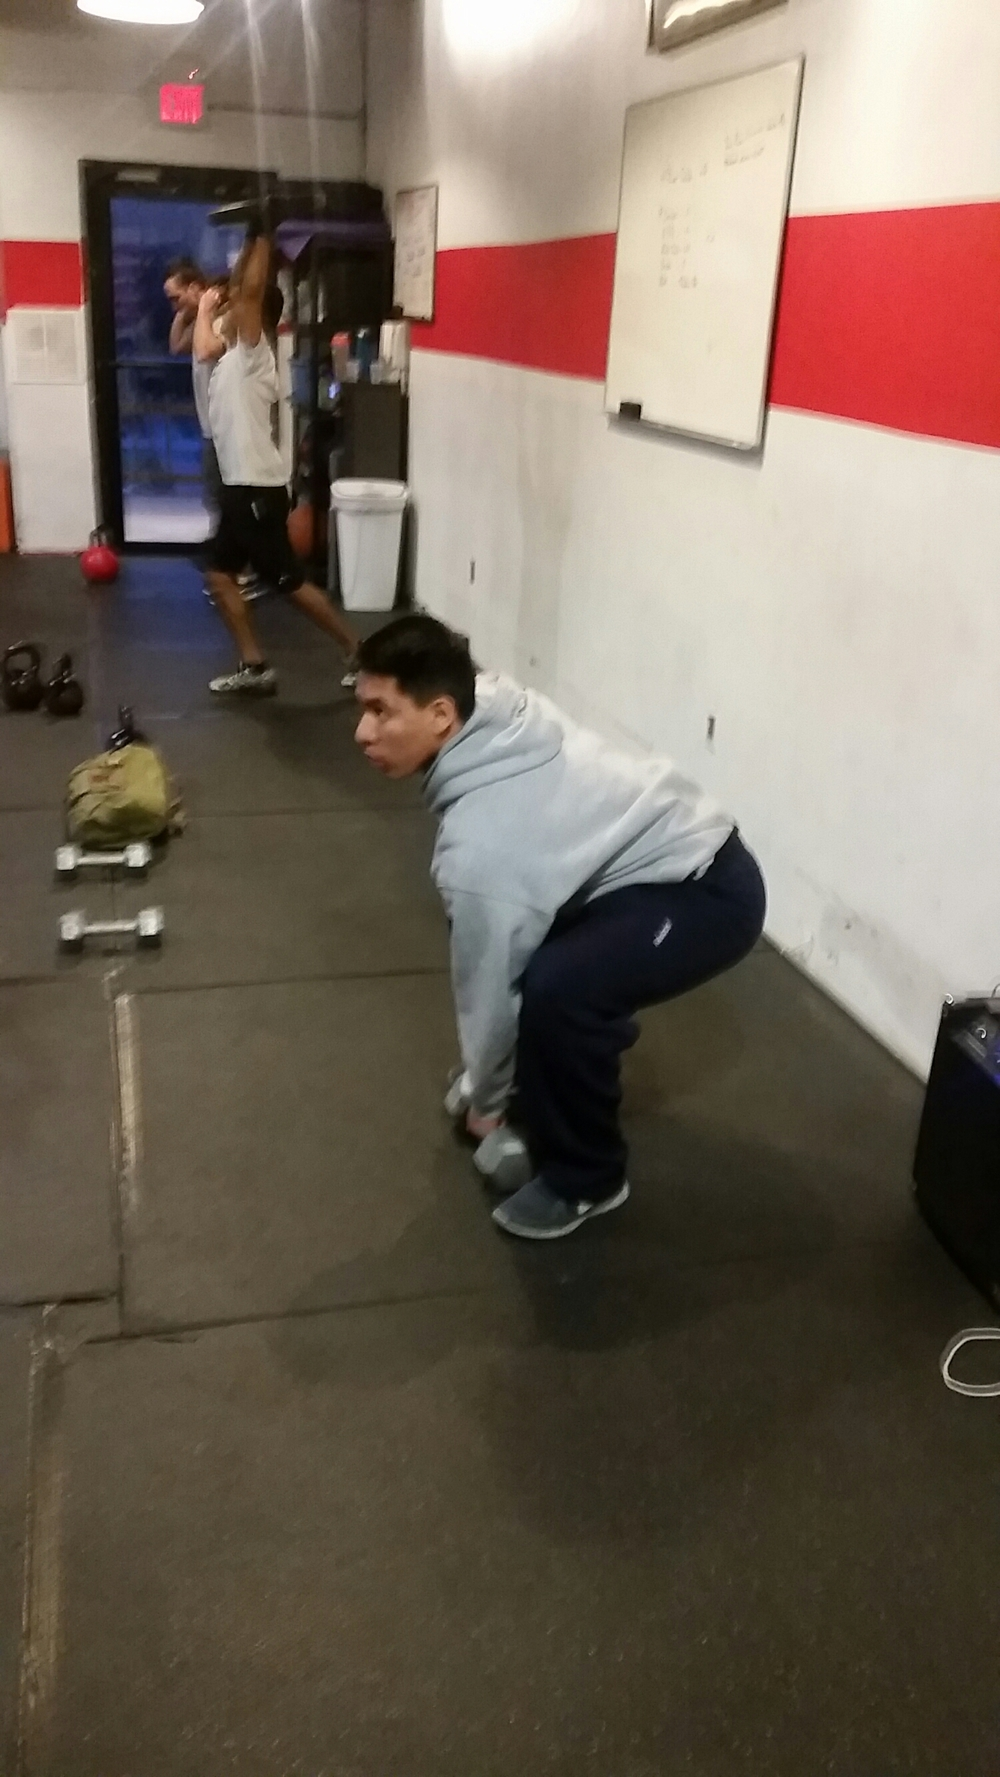 move the weight for ground to over head as fast as possible